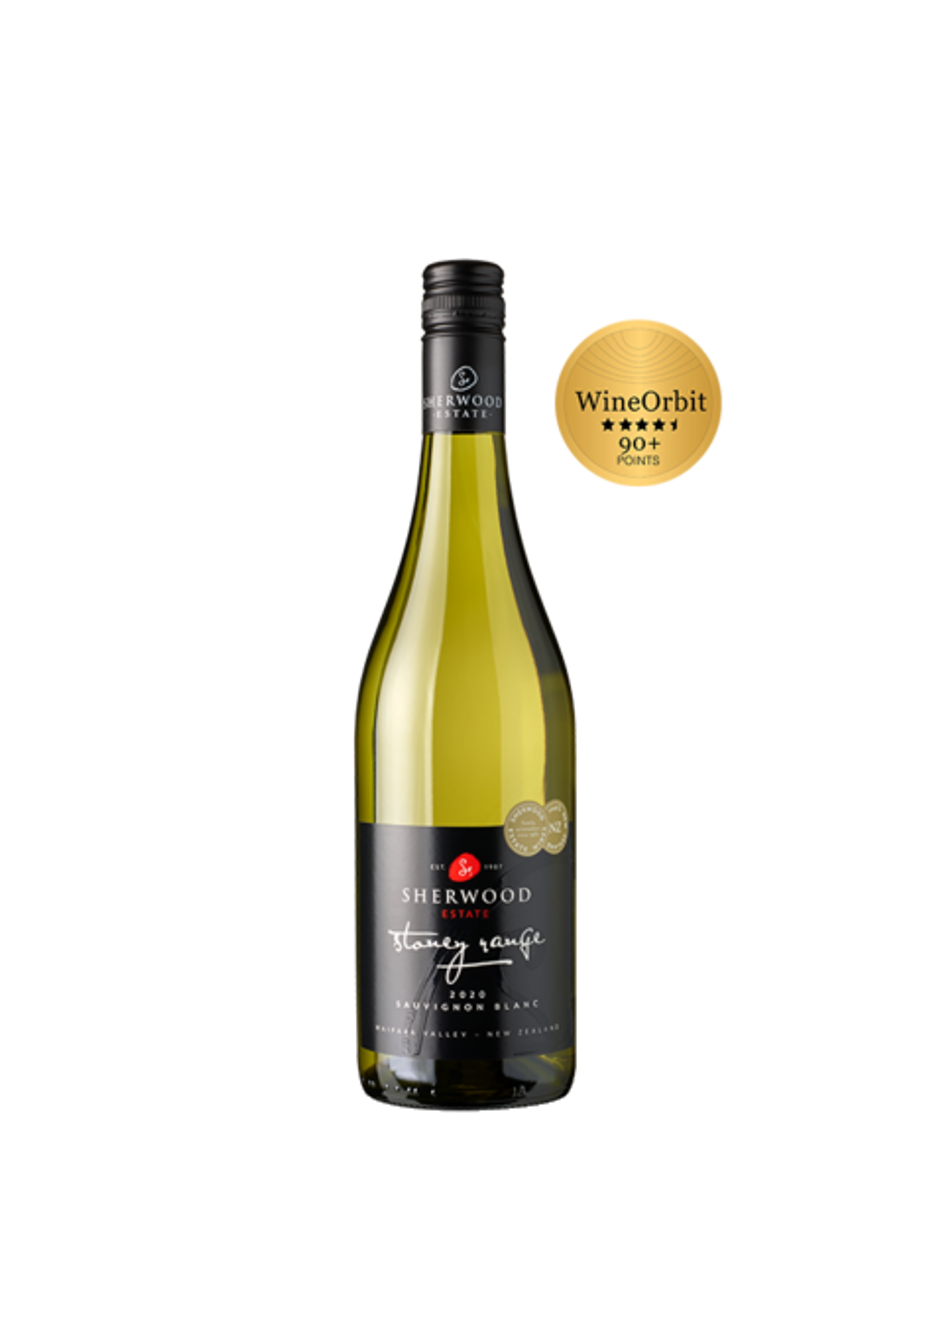 Sherwood Estate 'Stoney Range' Waipara Sauvignon Blanc 2020